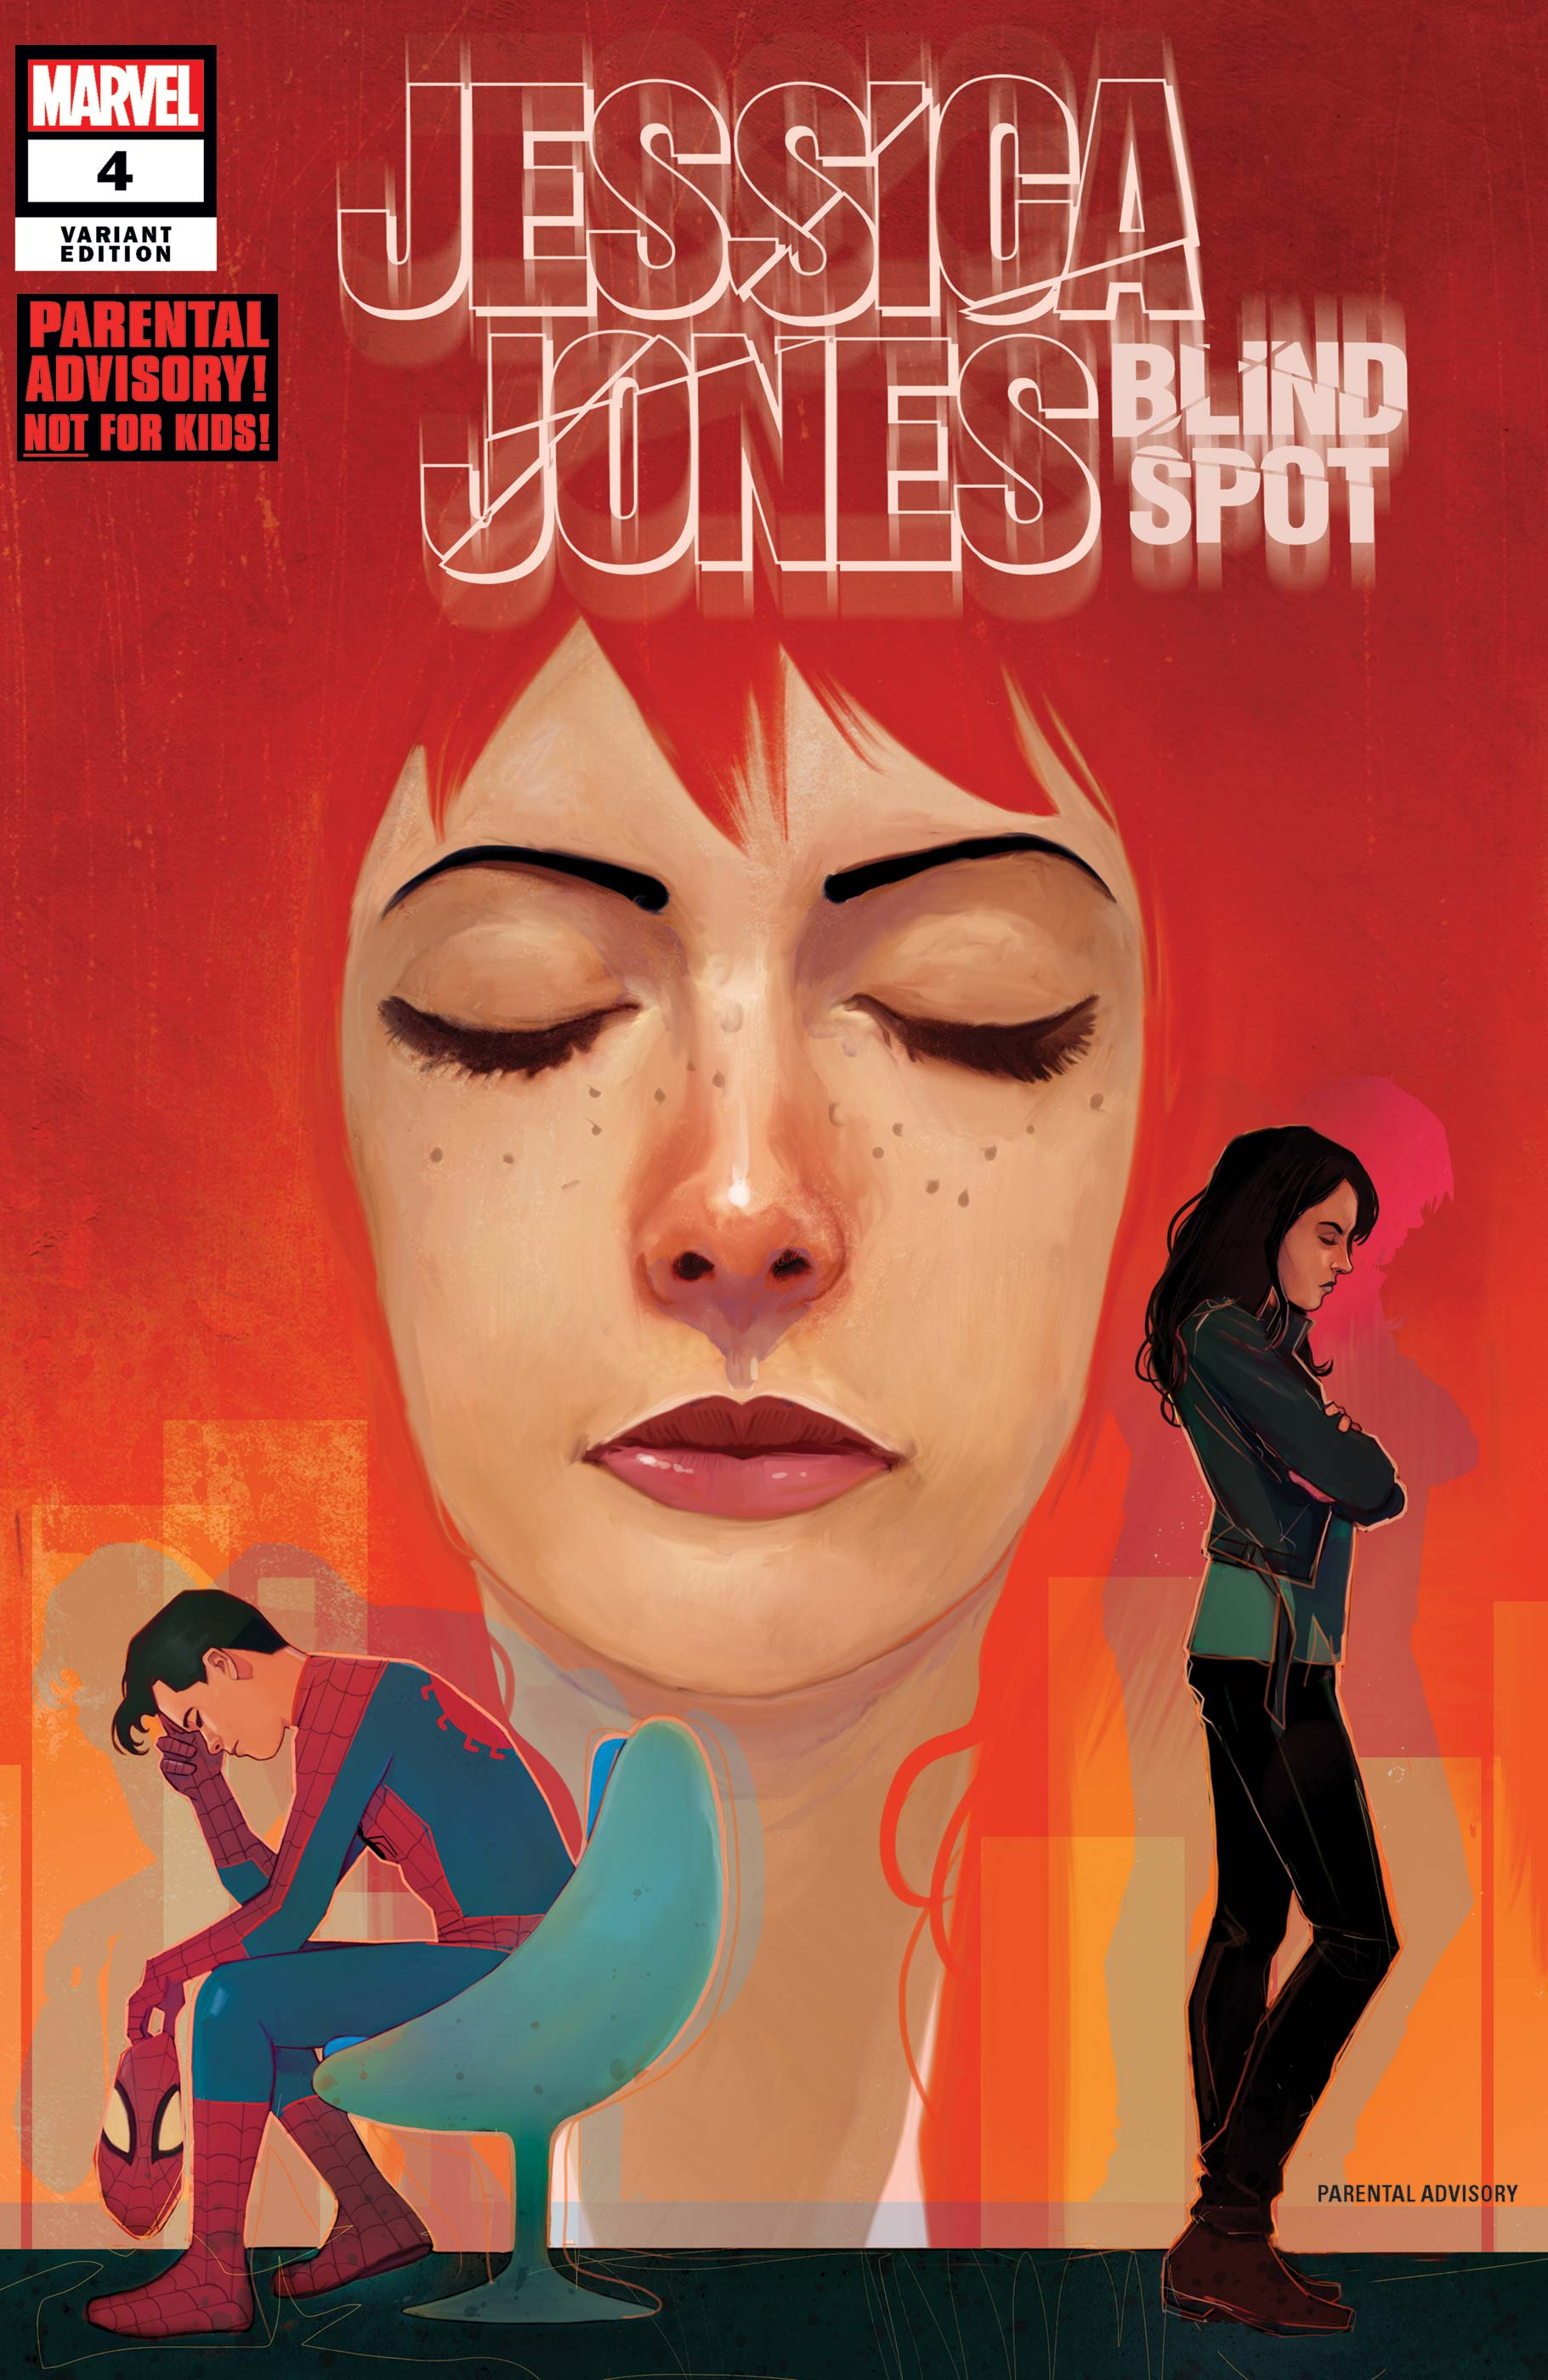 Jessica Jones: Blind Spot (2020) #4 (Variant)